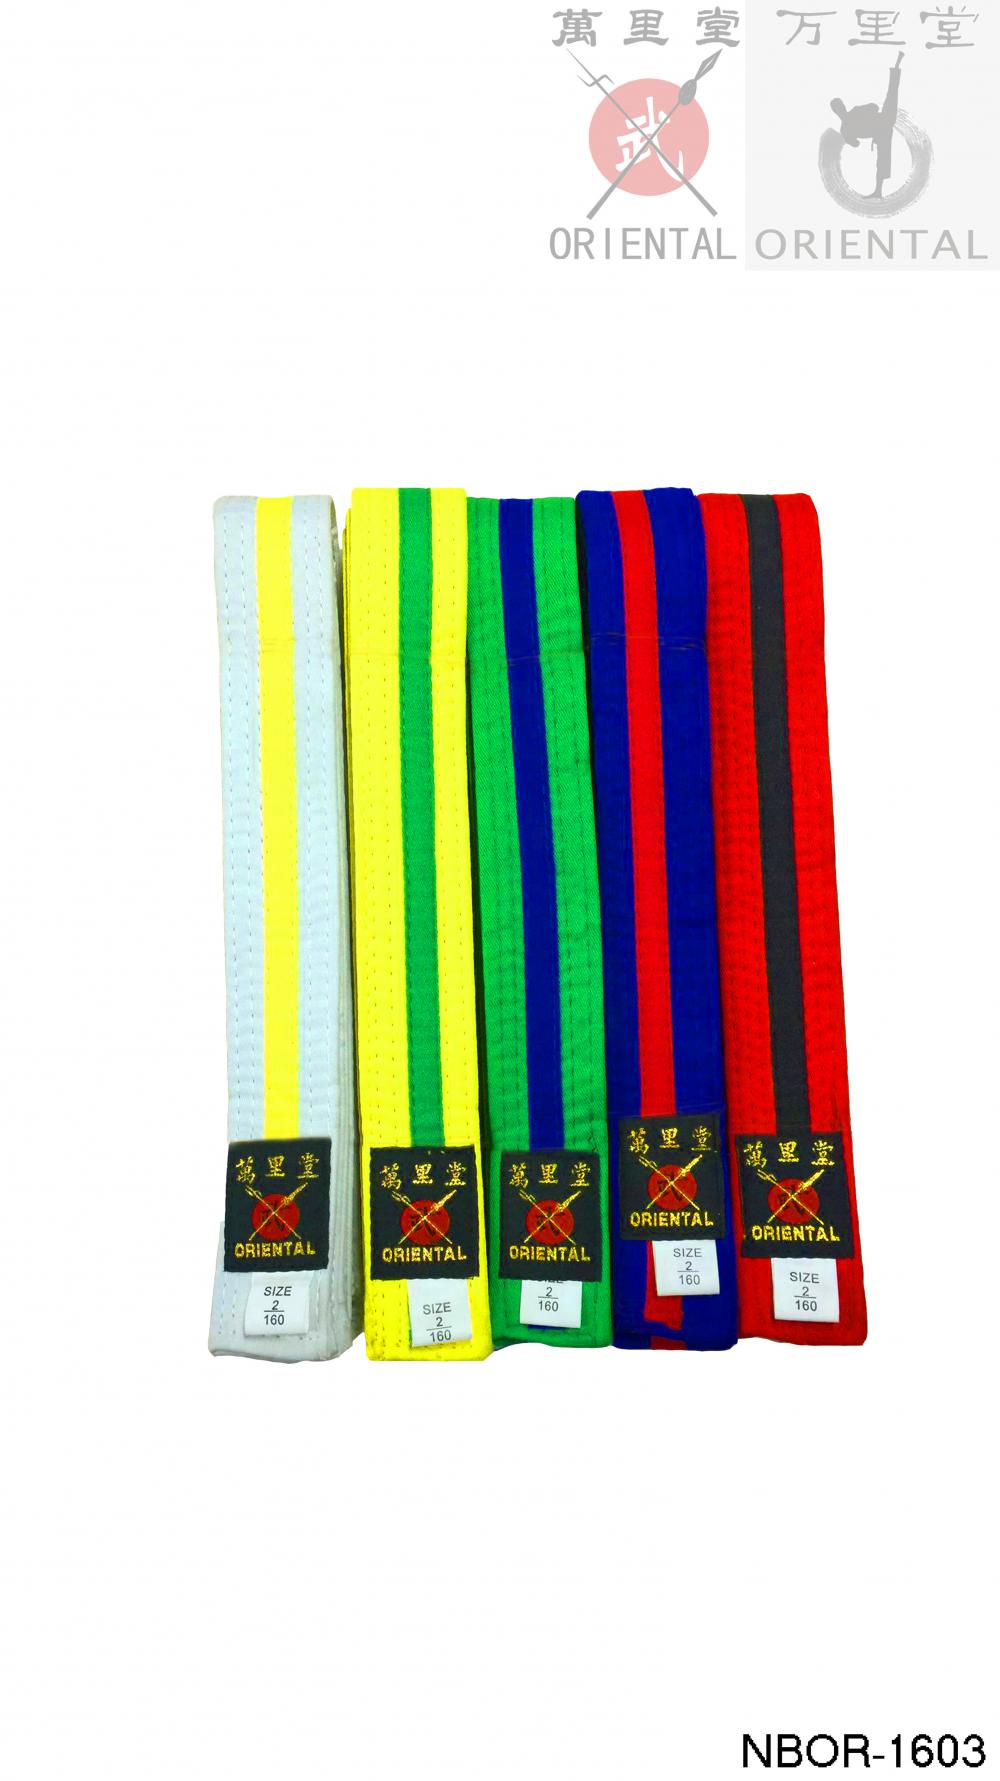 4cm colorful belts in taekwondo